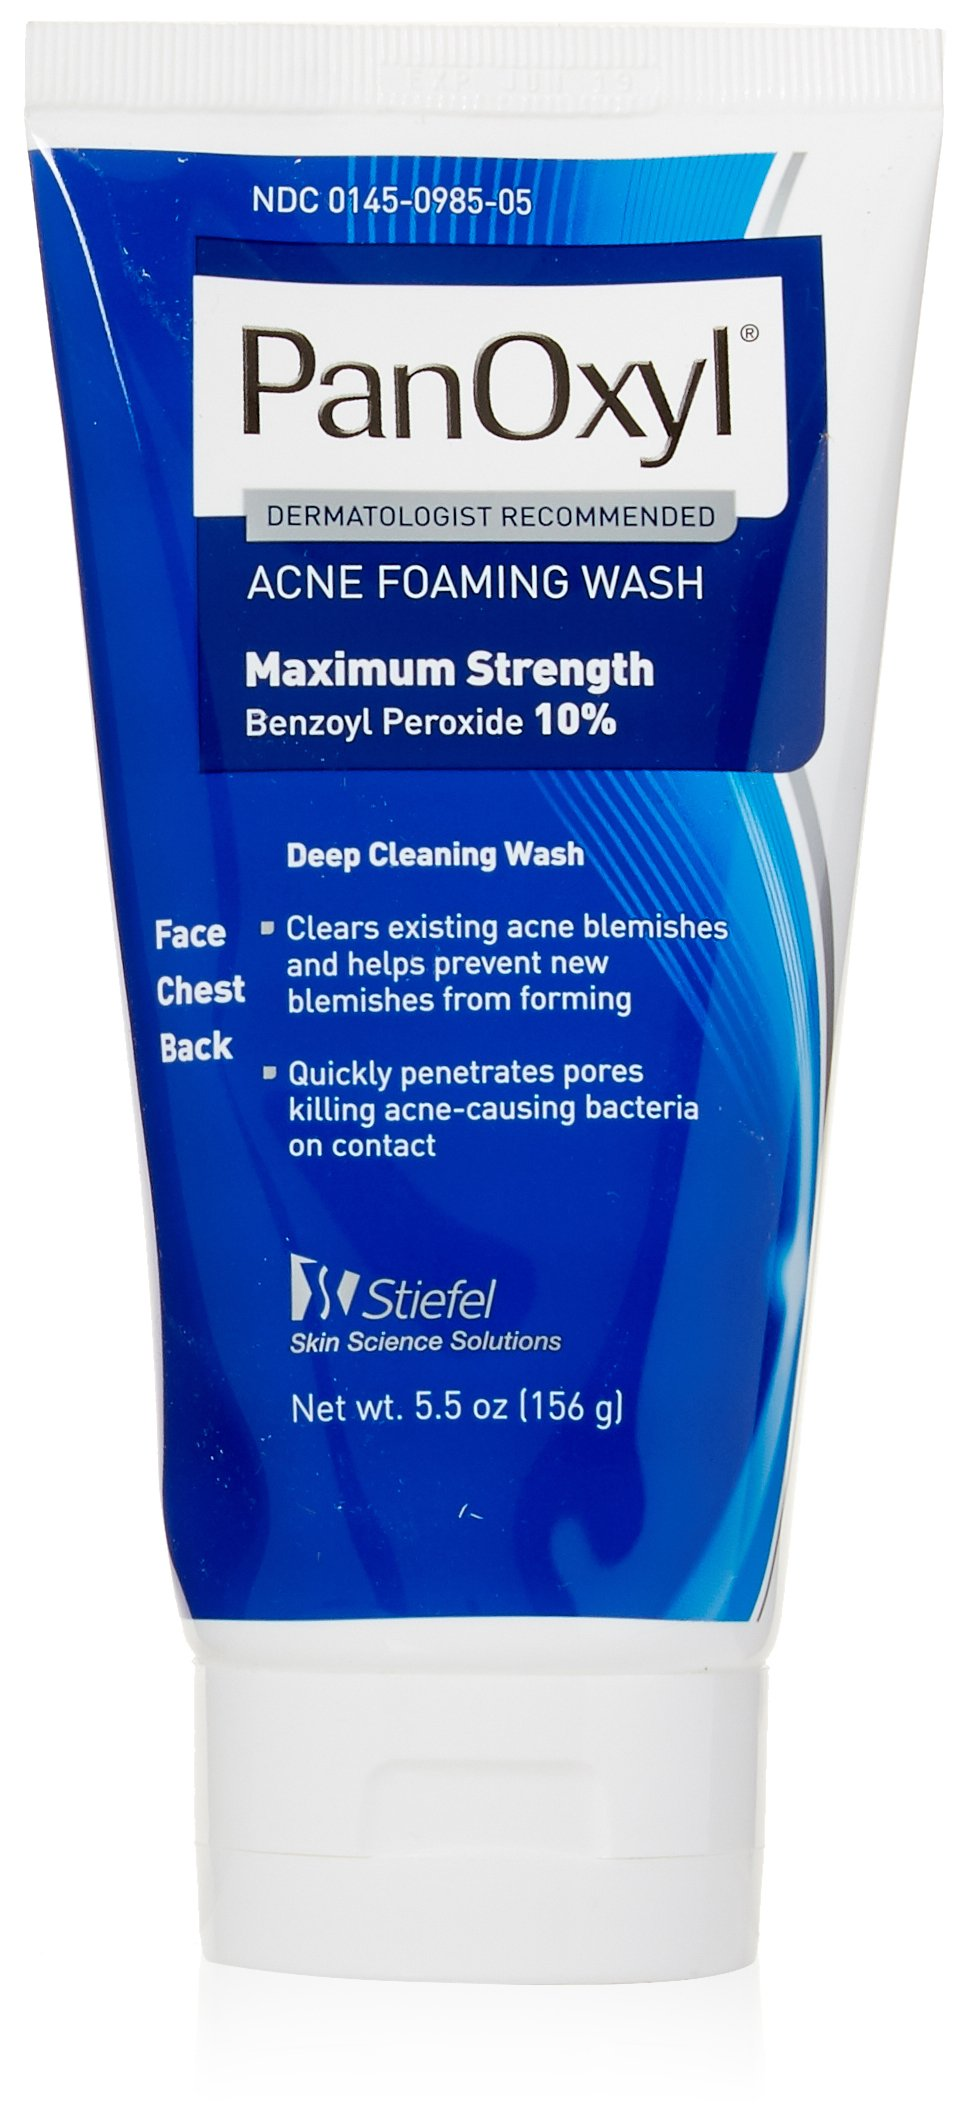 Stiefel PanOxyl 10 Percent Foaming Wash